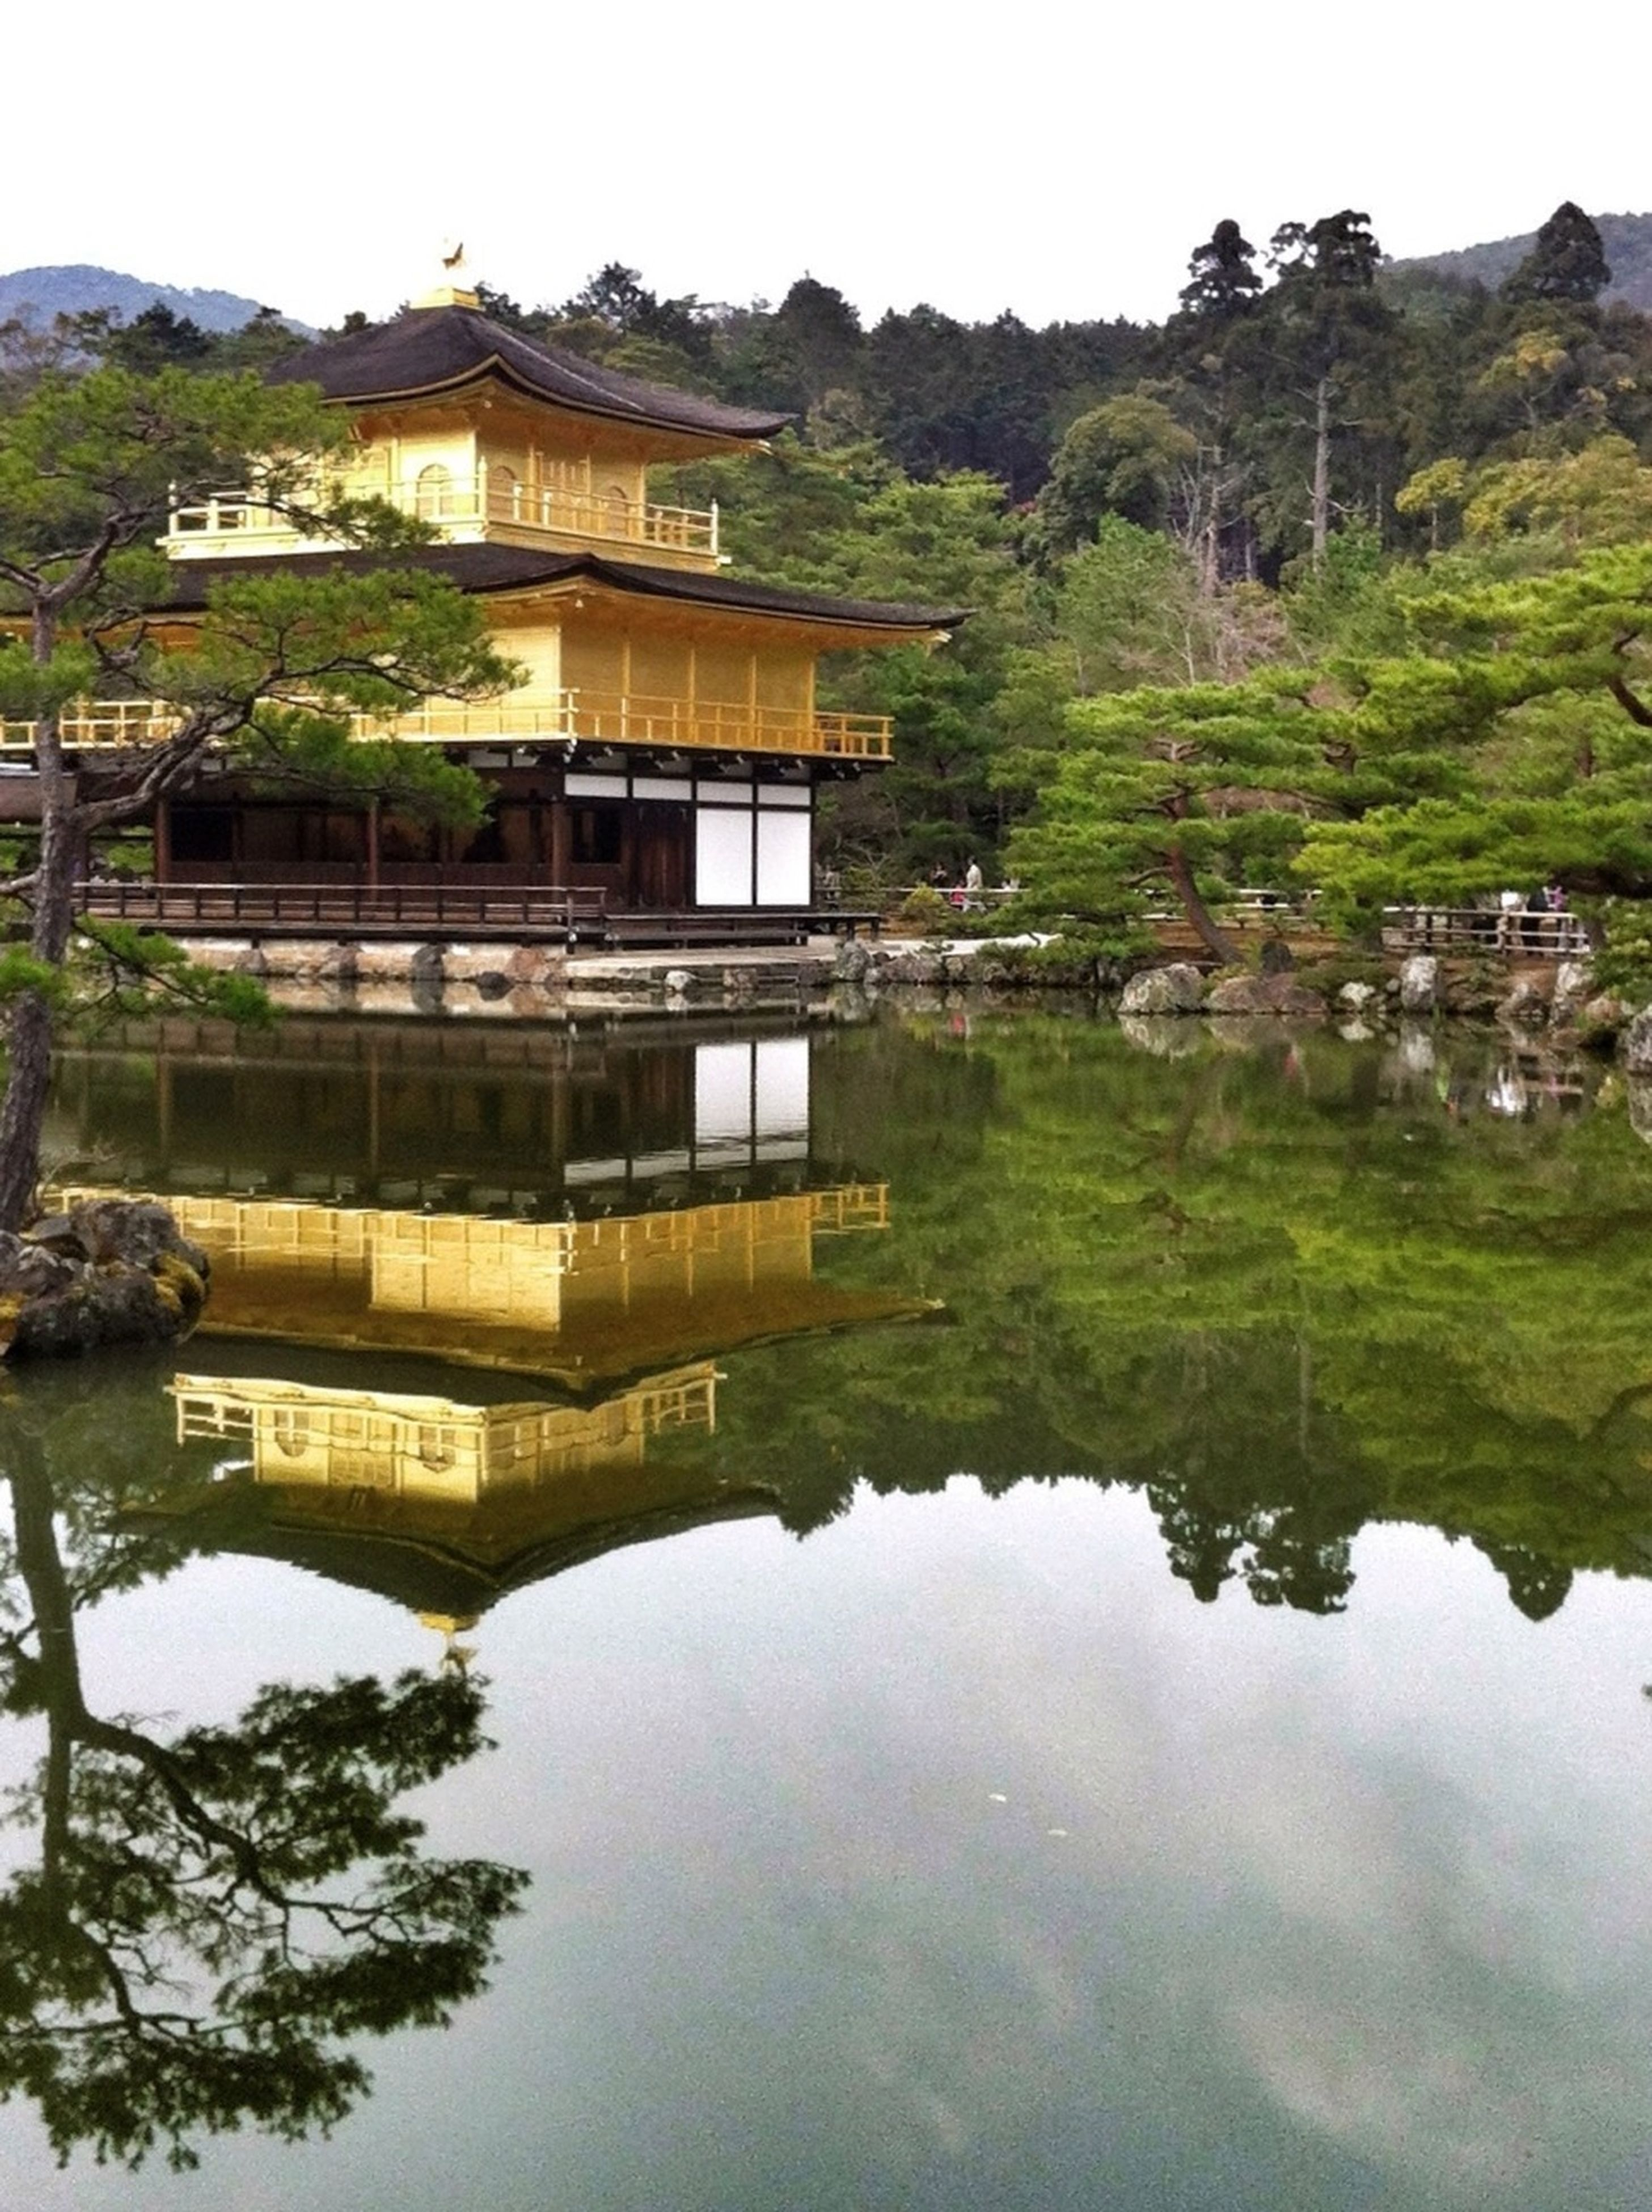 reflection, architecture, water, built structure, building exterior, tree, house, waterfront, standing water, lake, tranquility, clear sky, tranquil scene, nature, mountain, sky, scenics, day, river, residential structure